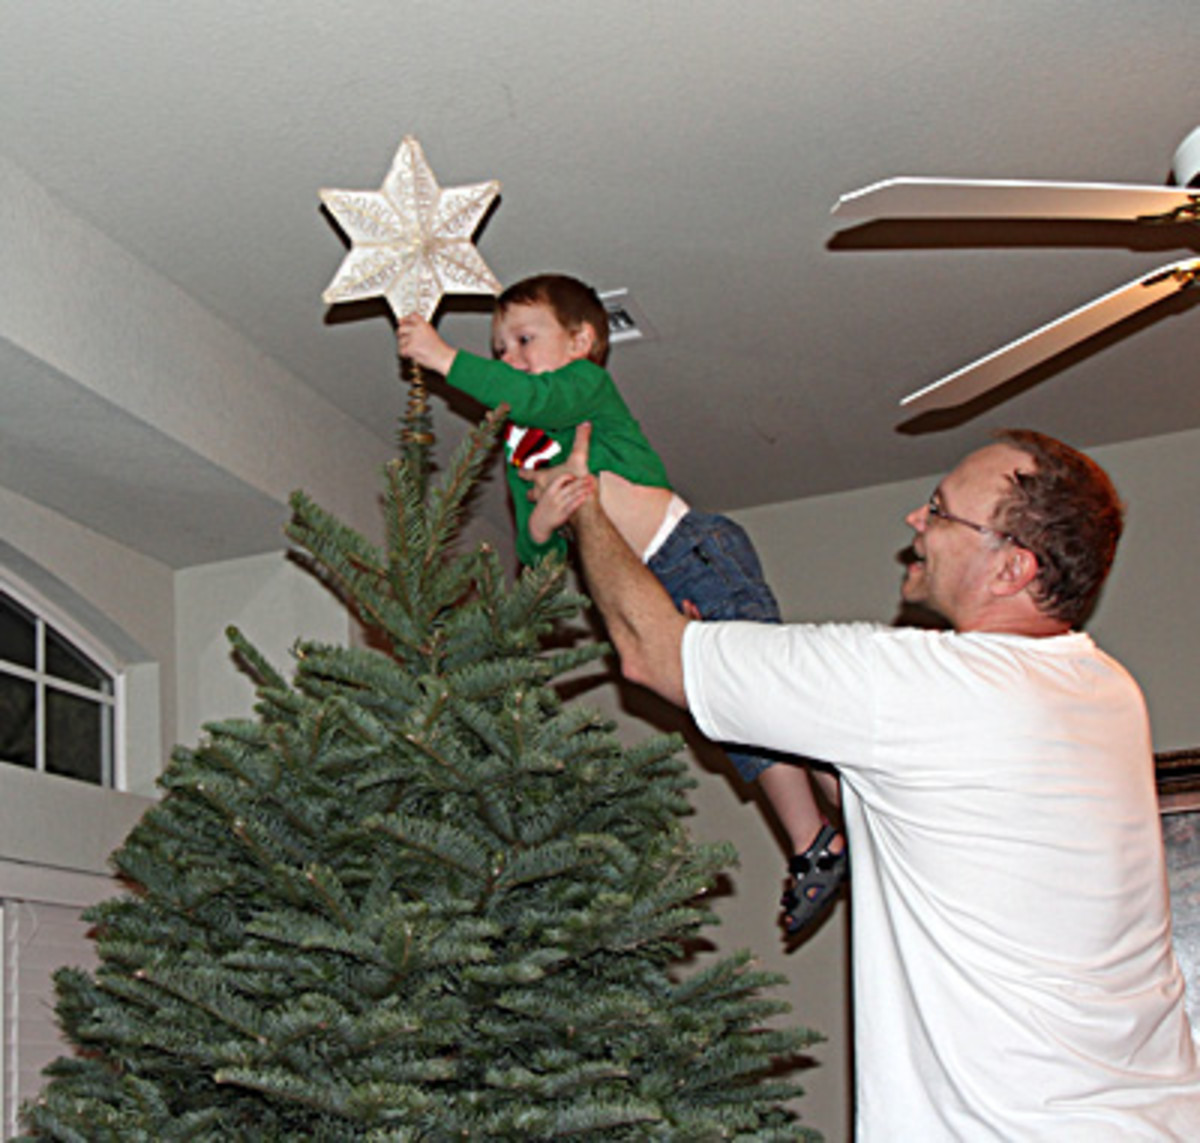 meaning-of-the-star-on-the-christmas-tree